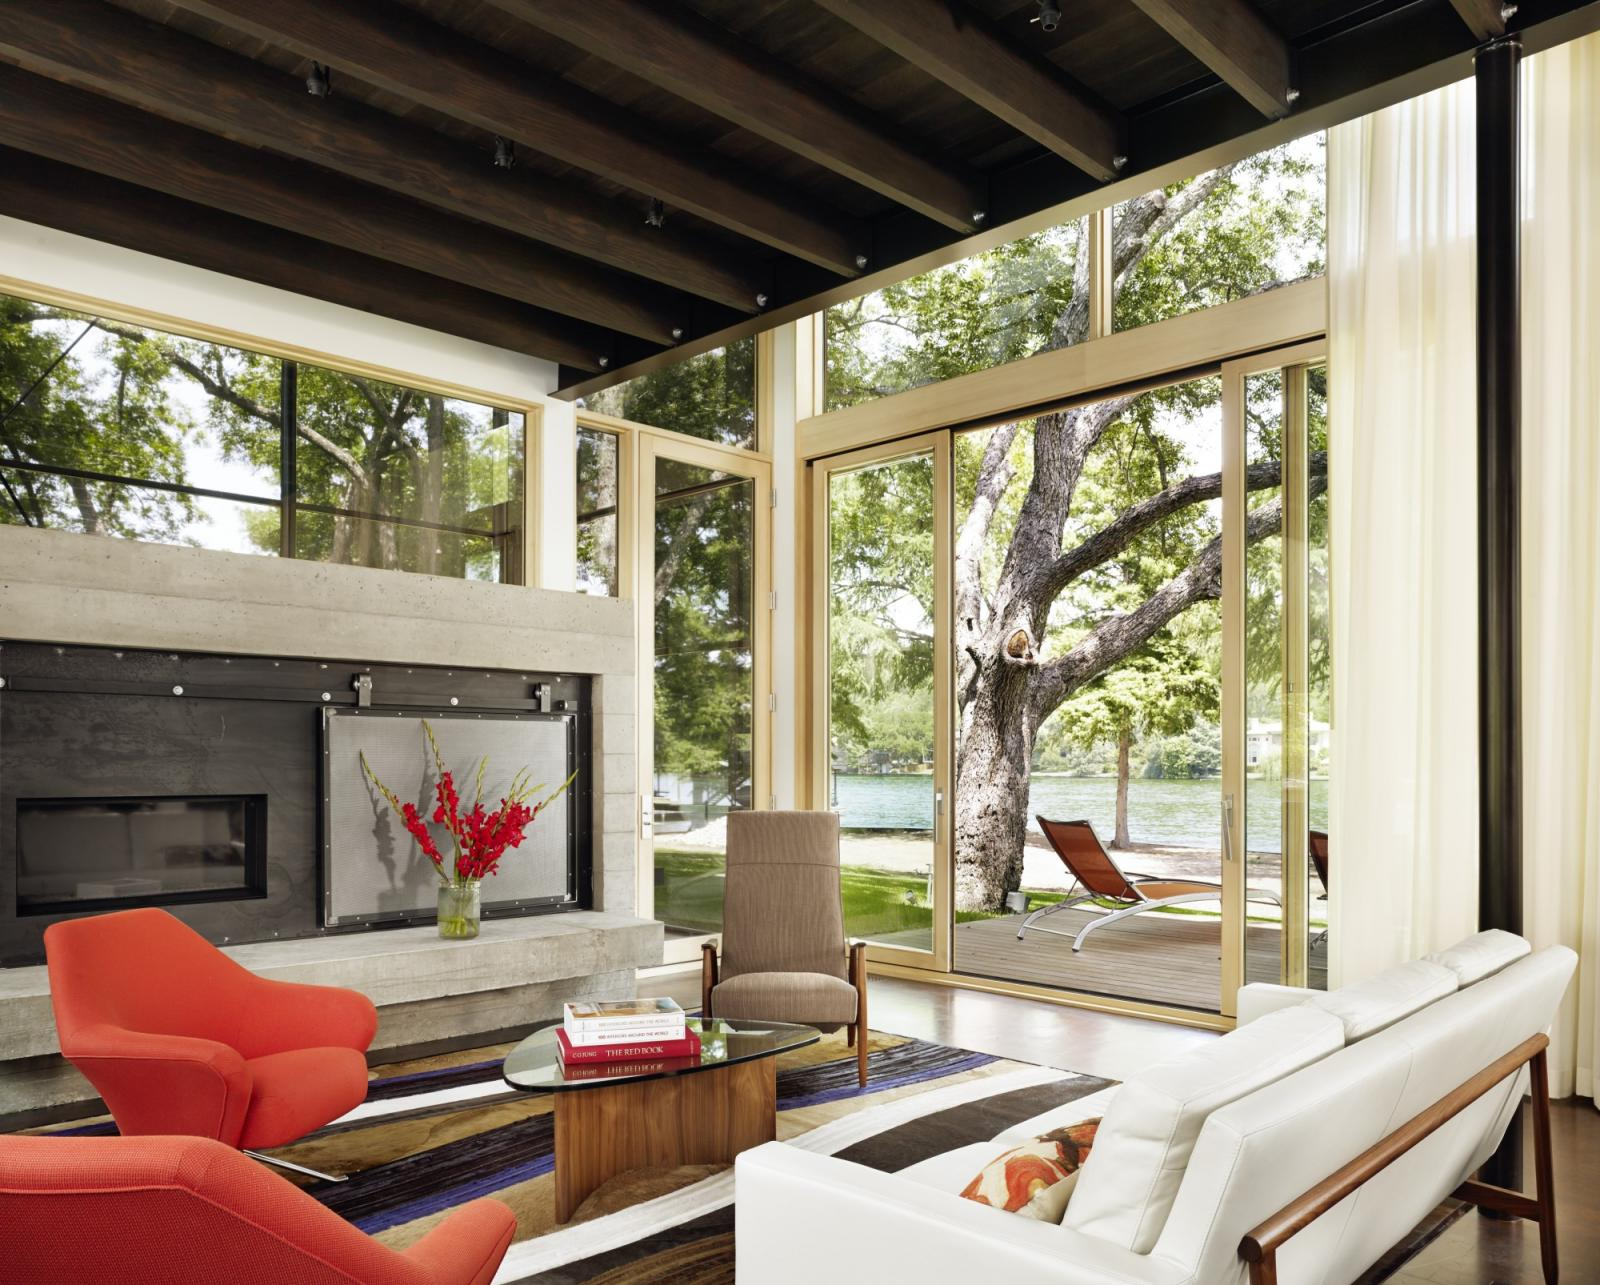 Hog Pen Creek Residence was envisioned by its owners as a place that evokes the playfulness of summer on the lake. Interior image looking across the living room seating area with views to outside porch and lake.